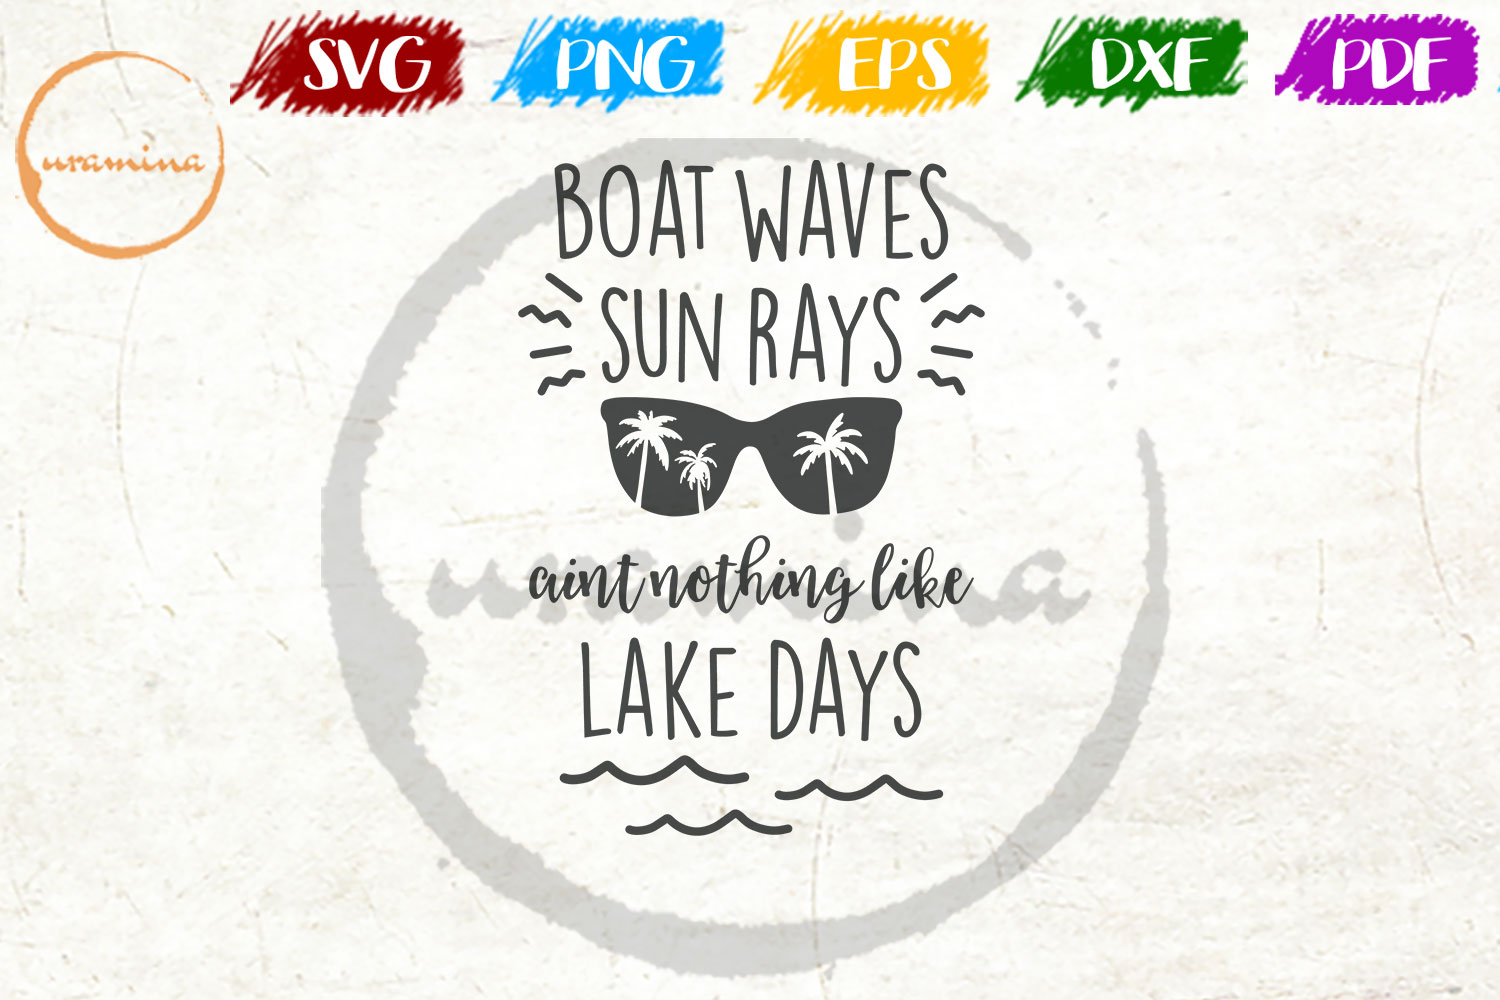 Download Free Boat Waves Sun Rays Aint Nothing Like Graphic By Uramina for Cricut Explore, Silhouette and other cutting machines.